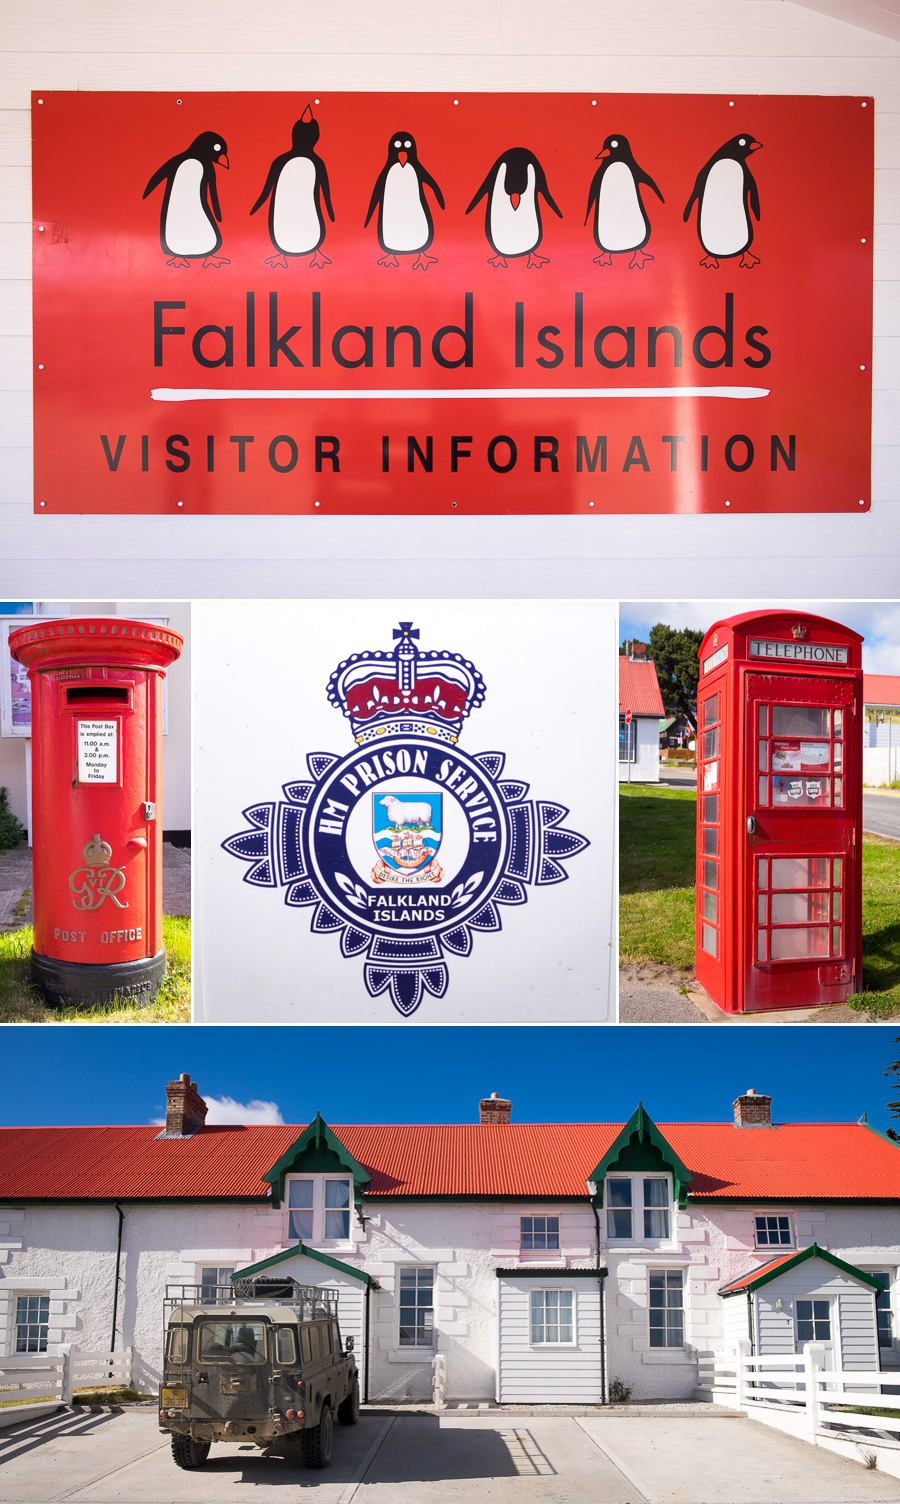 Stanley - Falkland Islands